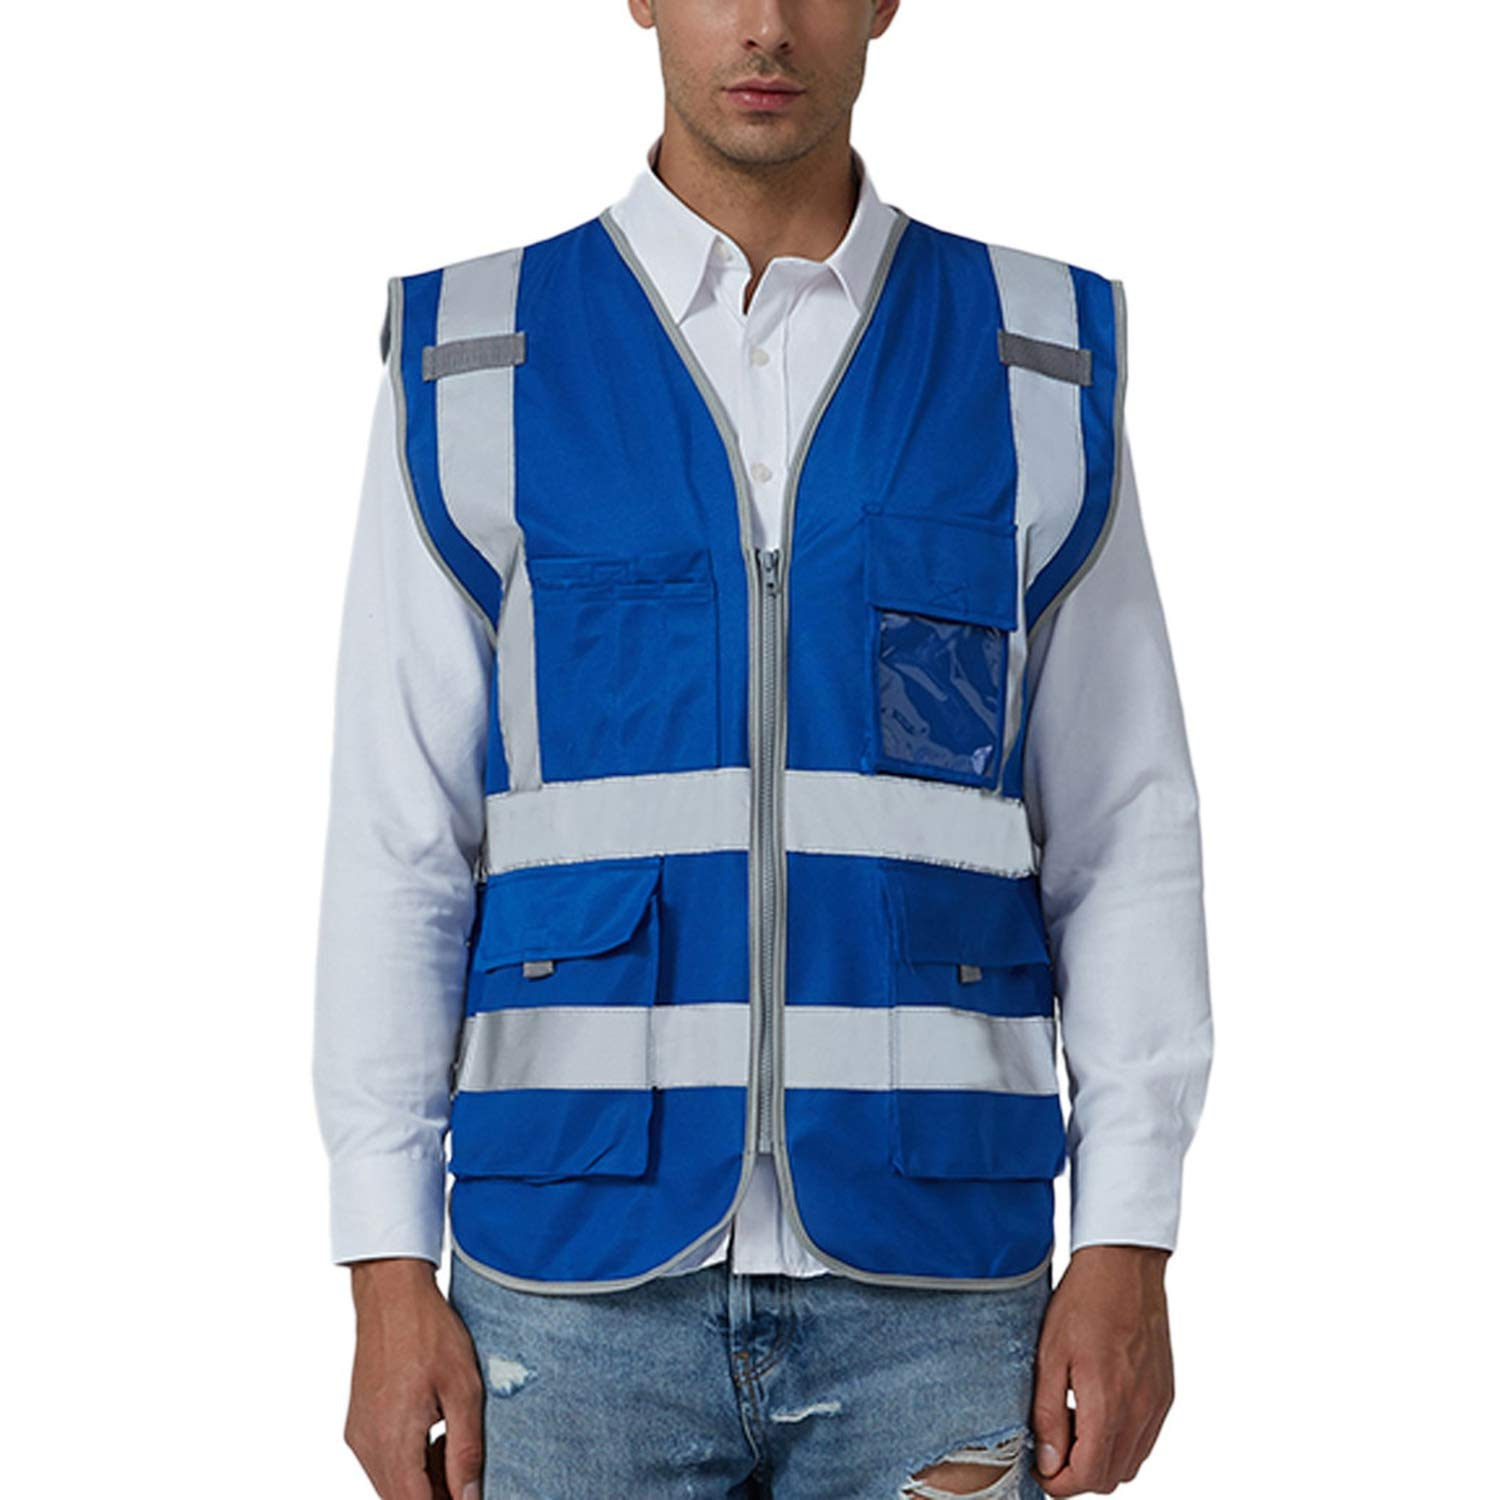 dc9cbc08817f7 Amazon.com  Men air Force Pilot Road Work High Visibilitypullover Sleeveless  Jacket British Suit Vest Blouse  G8